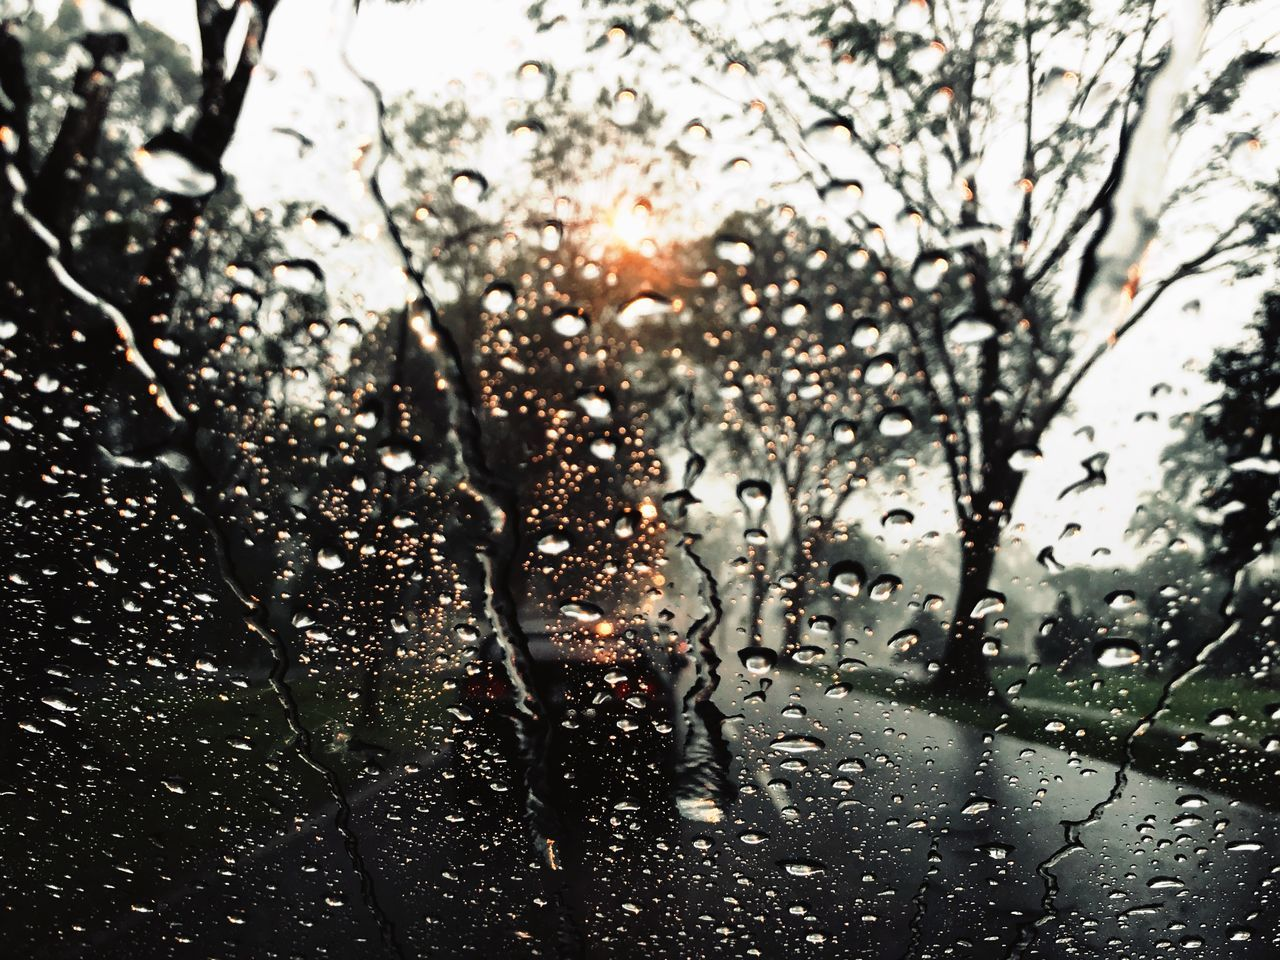 drop, water, car, window, wet, weather, land vehicle, no people, focus on foreground, raindrop, close-up, day, indoors, transportation, full frame, tree, backgrounds, nature, sky